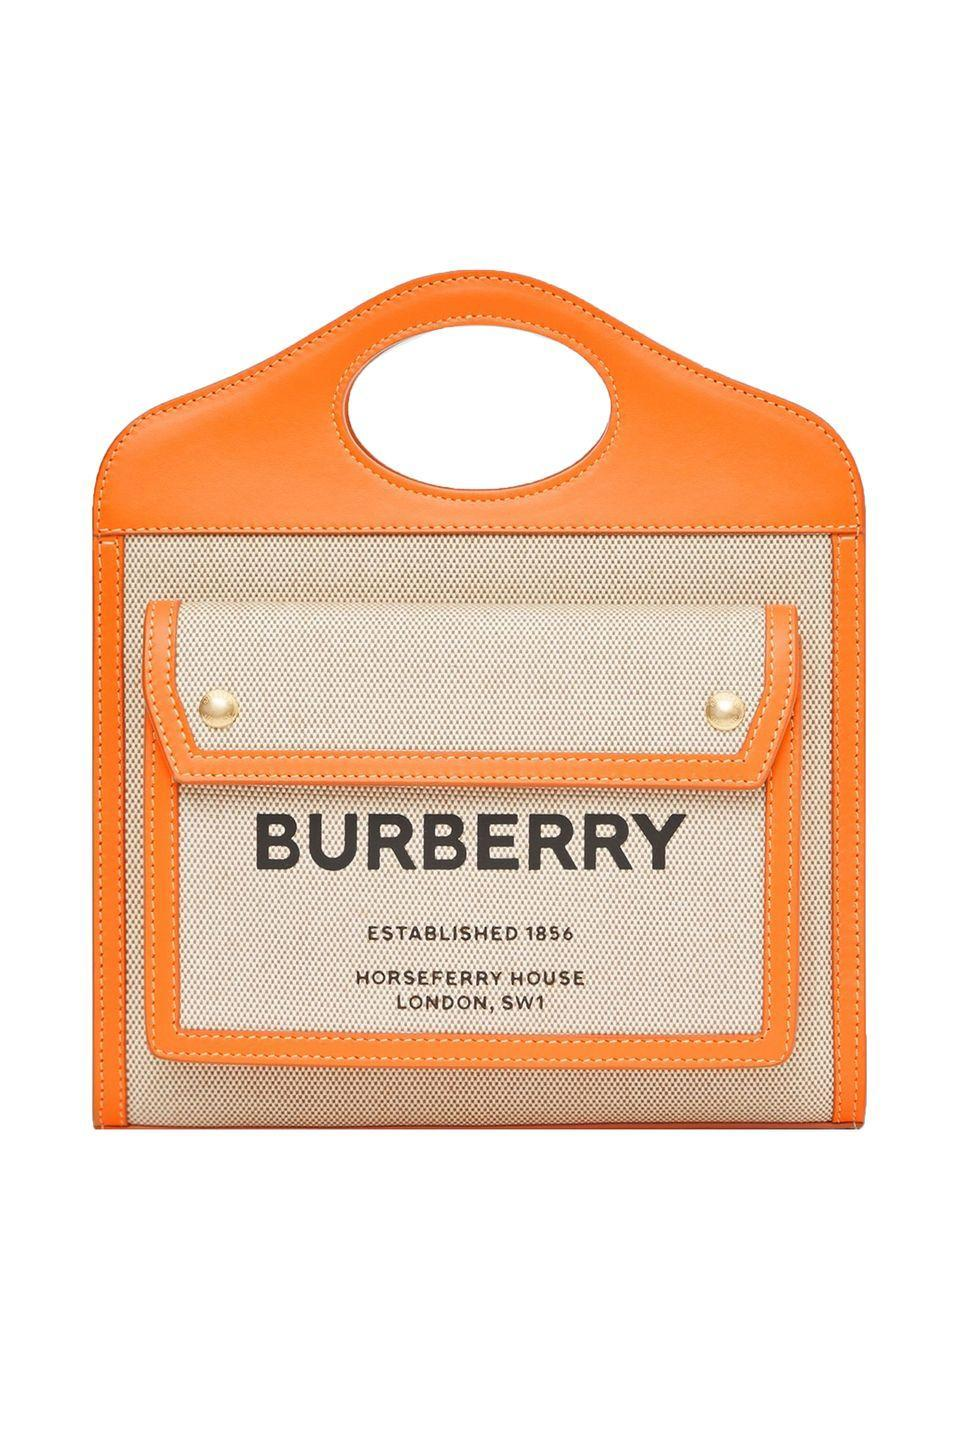 "<p>Burberry's new pocket bag marries the London label's archives, with a thoroughly modern shape. The crisp structure and contrast trim in traffic cone orange make it best for those looking to stand out. </p><p><em>Burberry, $1,090, burberry.com</em></p><p><a class=""link rapid-noclick-resp"" href=""https://go.redirectingat.com?id=74968X1596630&url=https%3A%2F%2Fus.burberry.com%2Fmini-two-tone-canvasleather-pocket-bag-p80323321&sref=https%3A%2F%2Fwww.elle.com%2Ffashion%2Fshopping%2Fg33416567%2Fdesigner-it-bags-pre-fall-2021%2F"" rel=""nofollow noopener"" target=""_blank"" data-ylk=""slk:SHOP NOW"">SHOP NOW</a></p>"